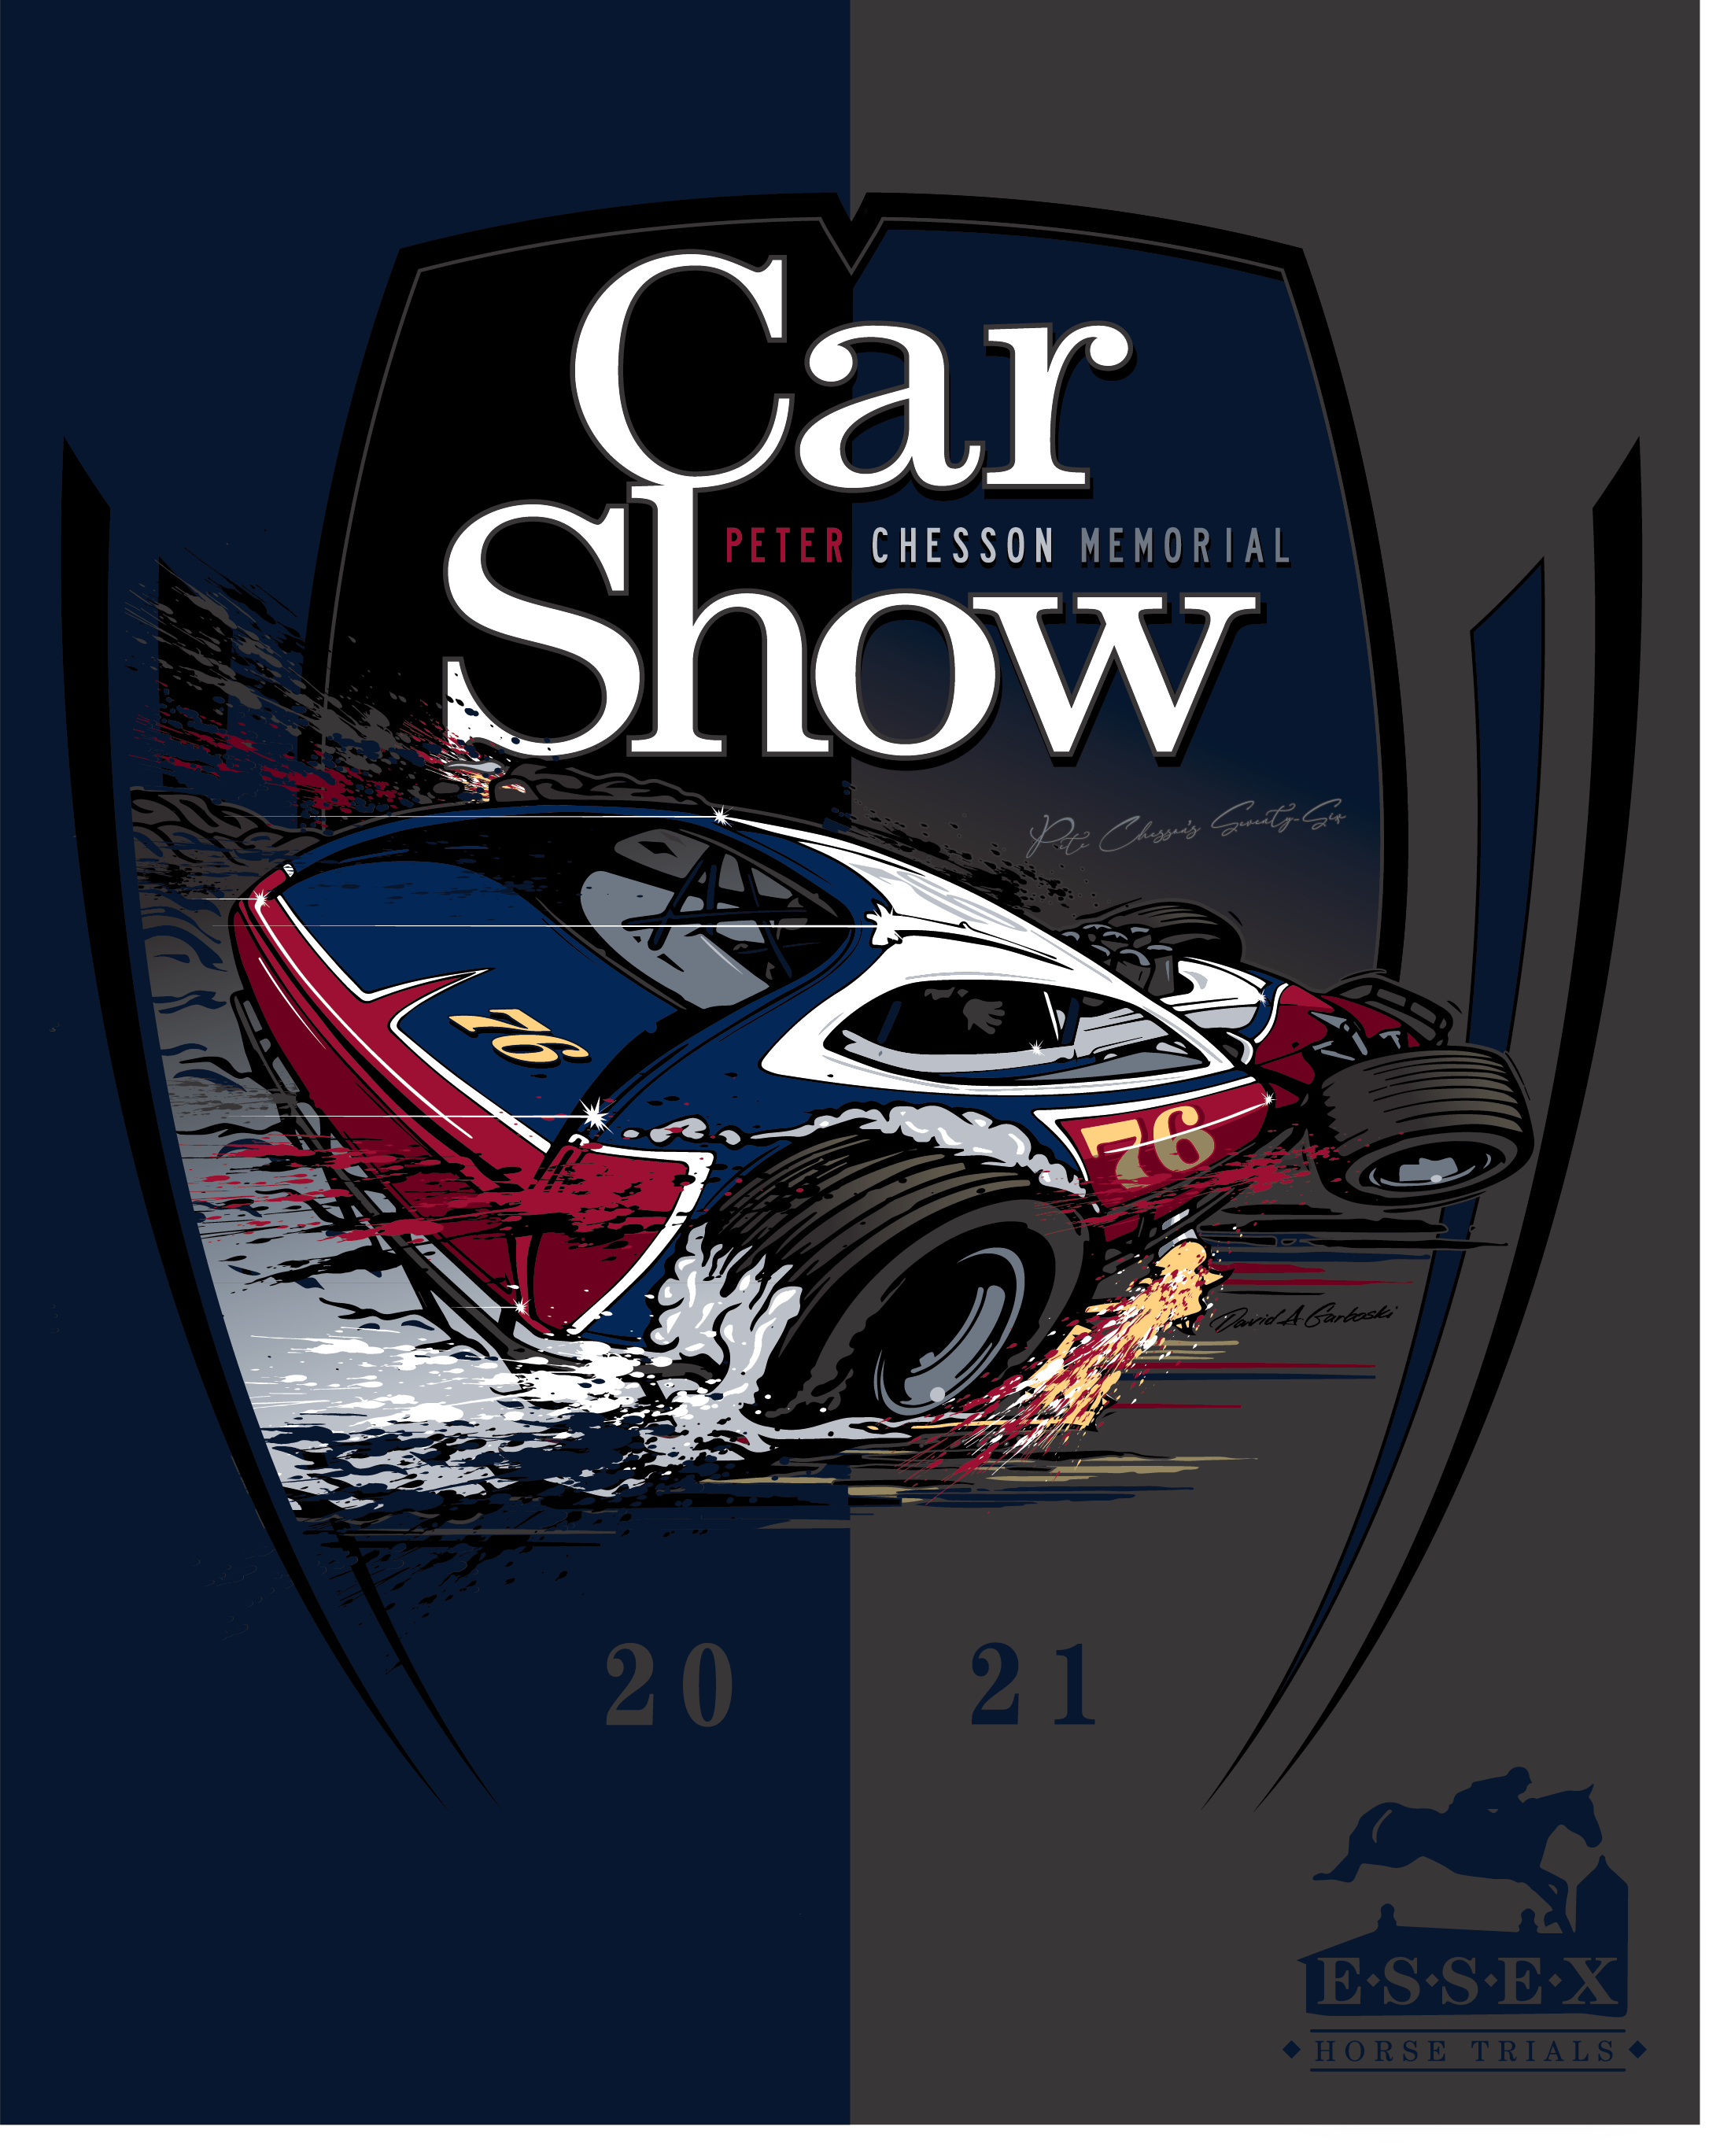 Peter Chesson Memorial Car Show 2021 Saturday, July 17th Far Hills New Jersey